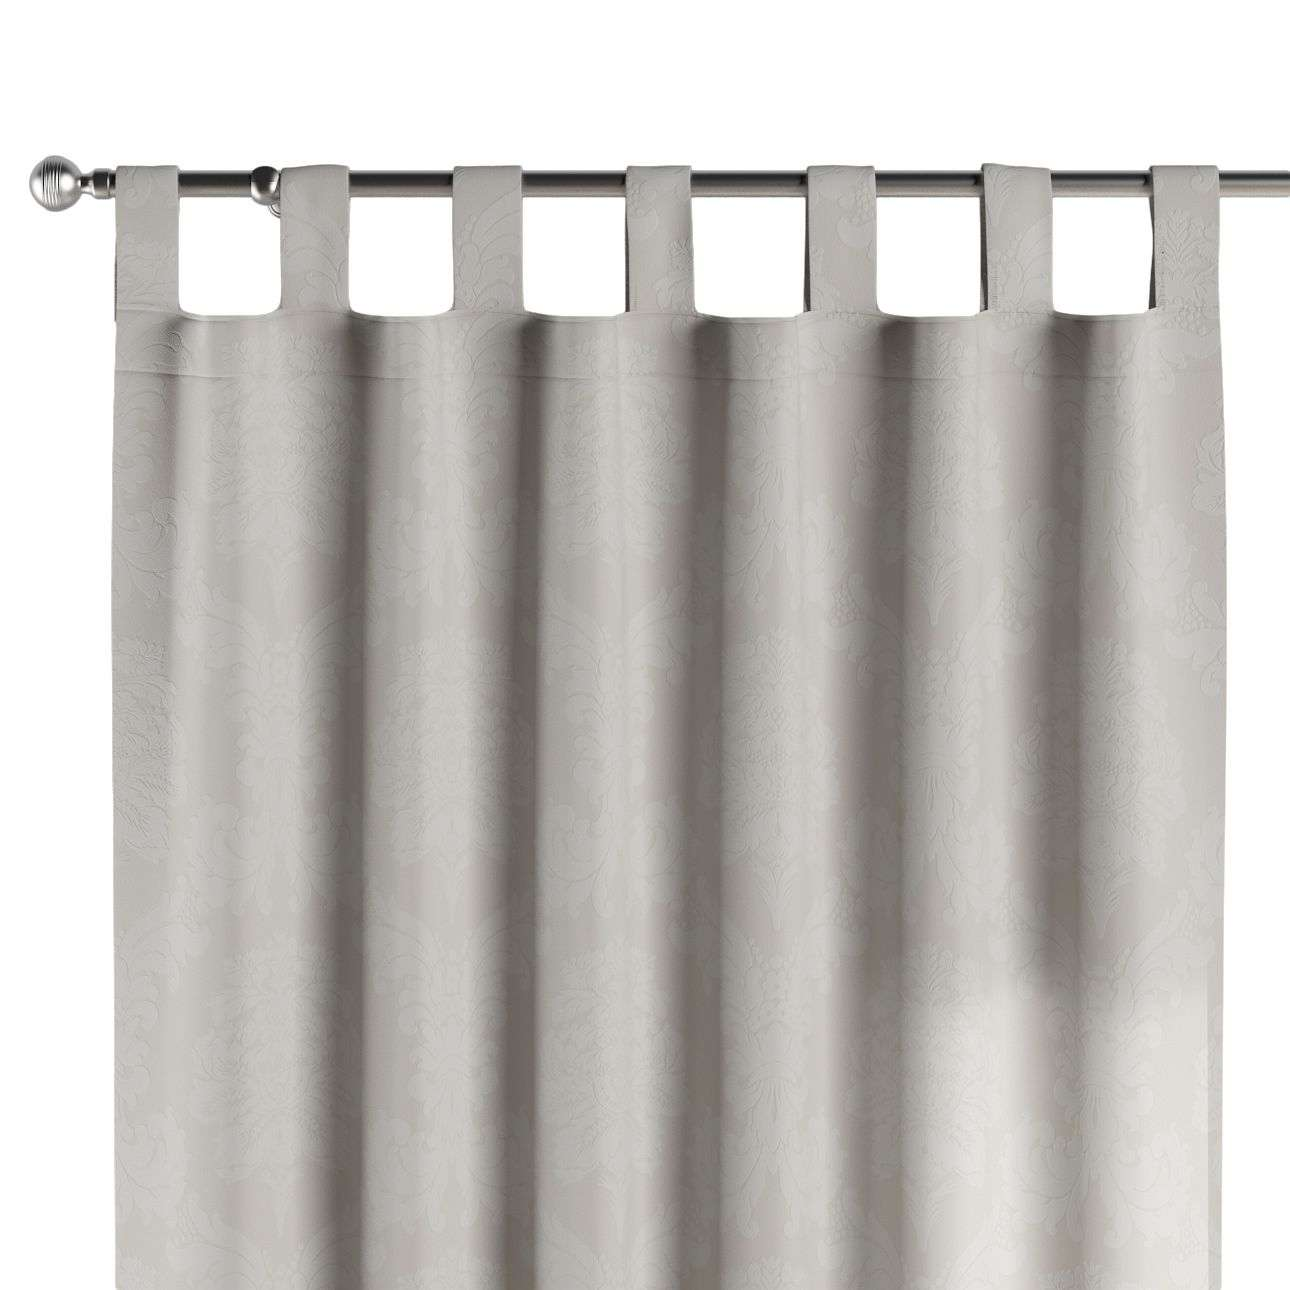 Tab top curtains 130 x 260 cm (51 x 102 inch) in collection Damasco, fabric: 613-81